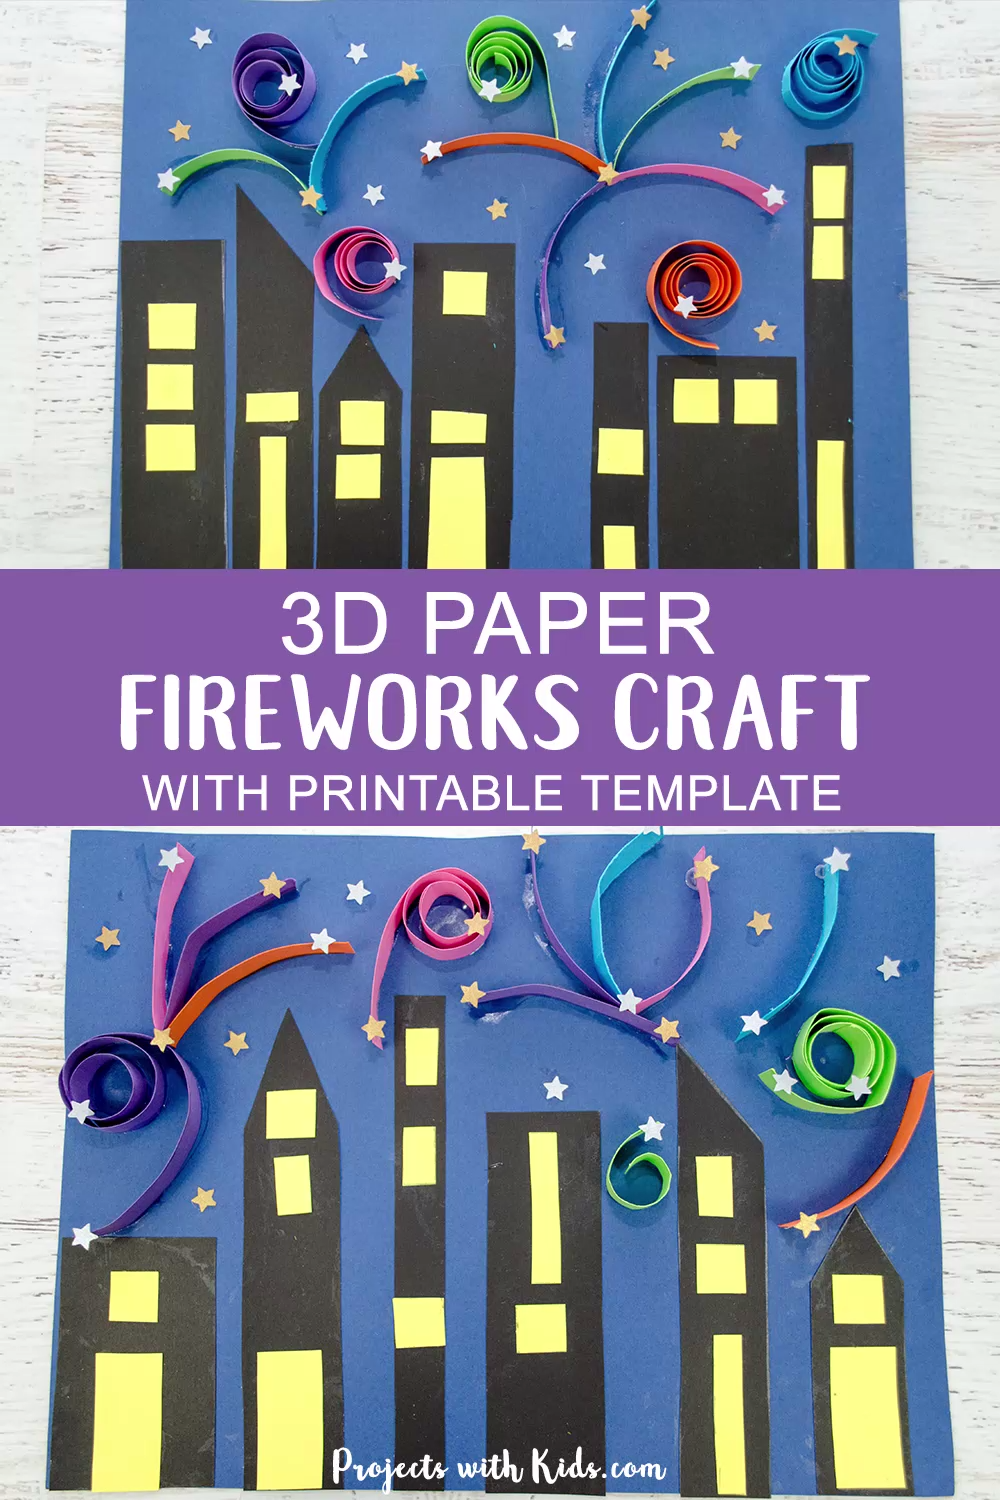 3D Paper Fireworks Craft